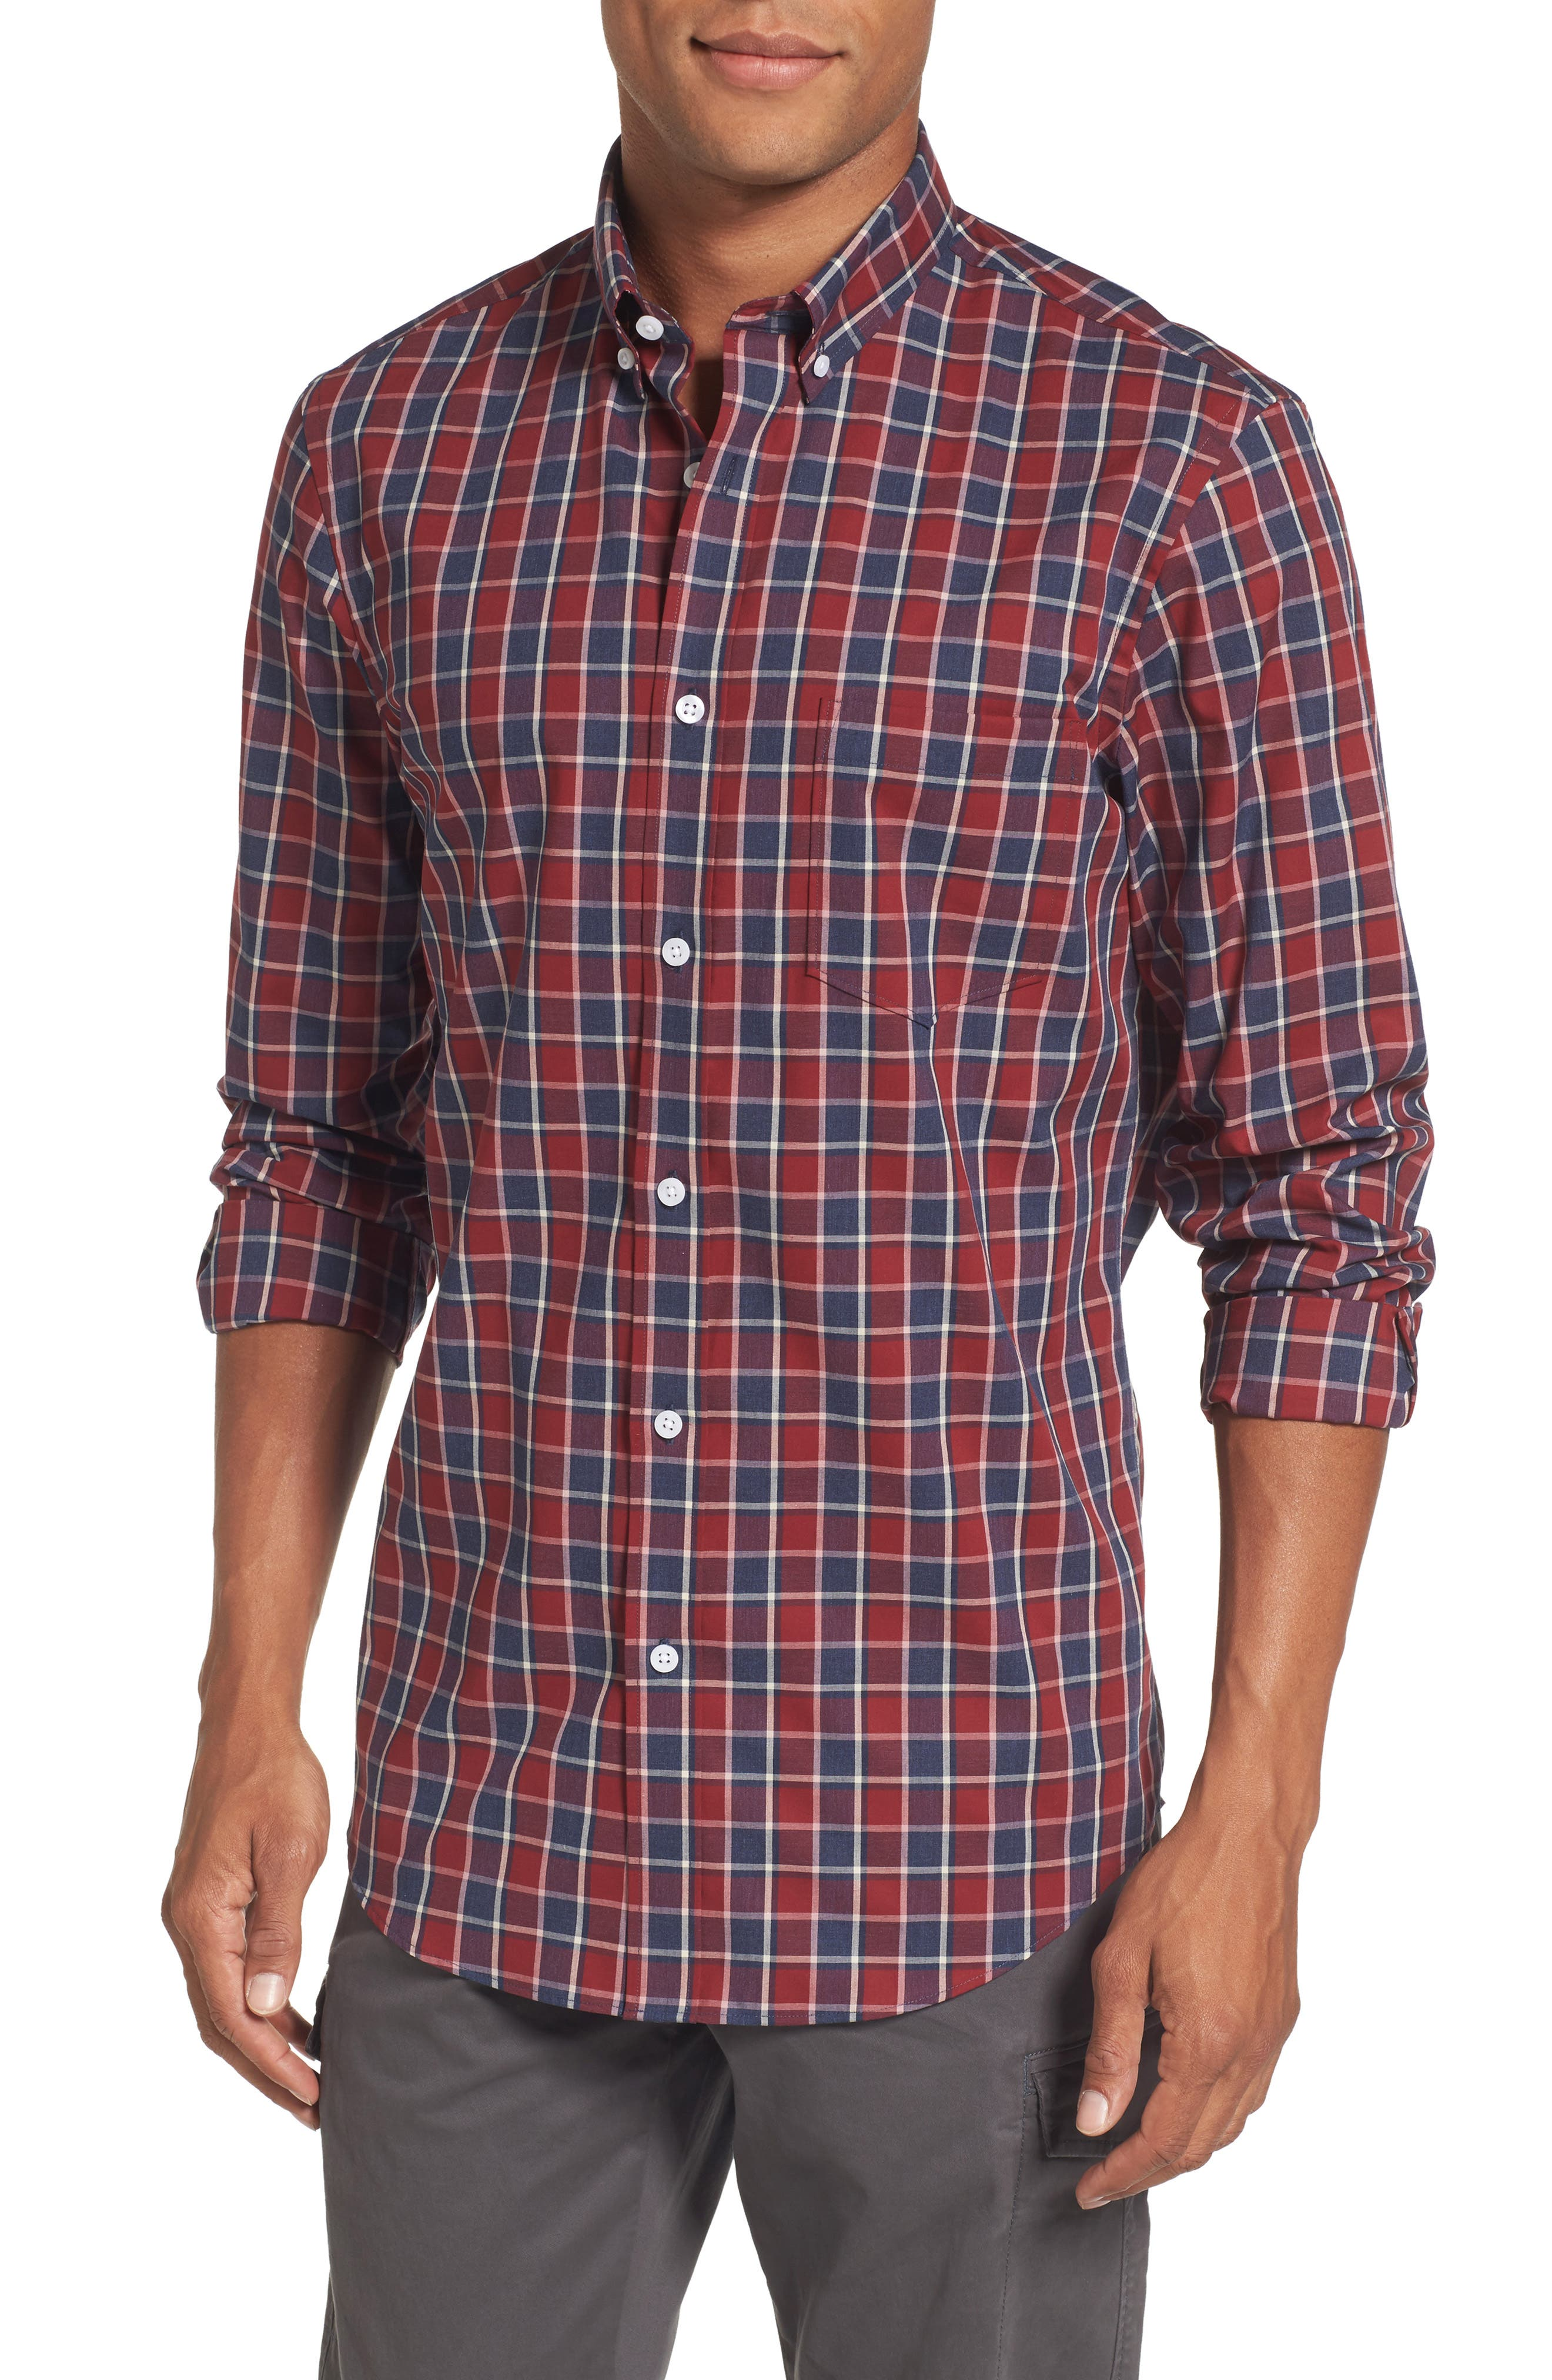 Nordstrom Men's Shop Non-Iron Check Sport Shirt